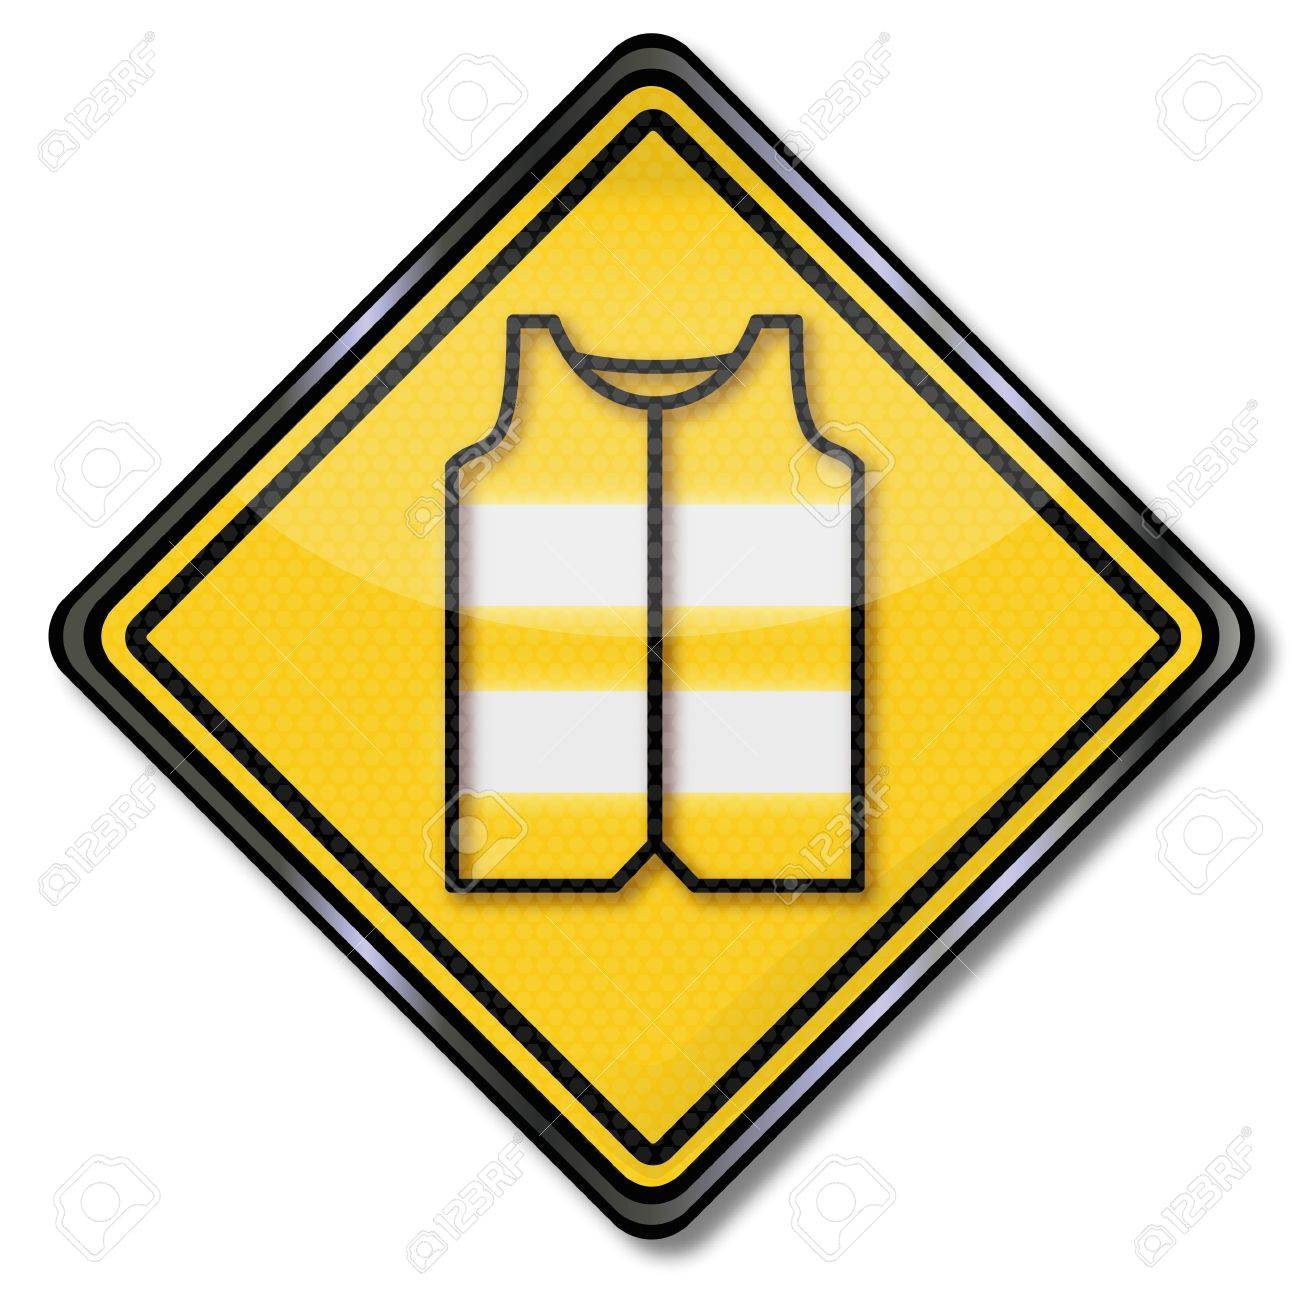 Sign with safety vest for motorists and car driver - 20411096